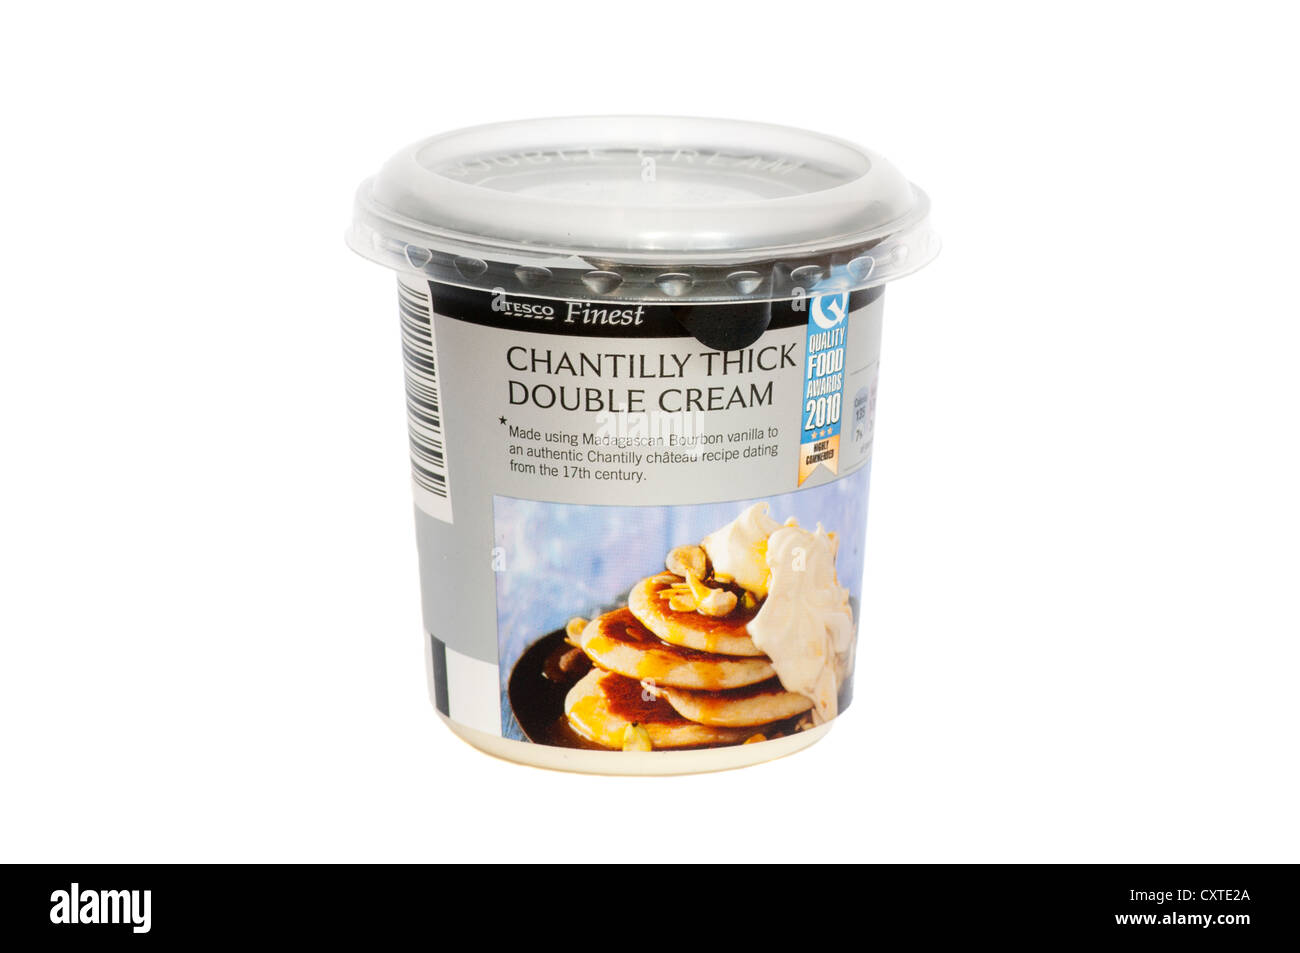 Tub Of Tesco Finest Chantilly Thick Double Cream Stock Photo Alamy